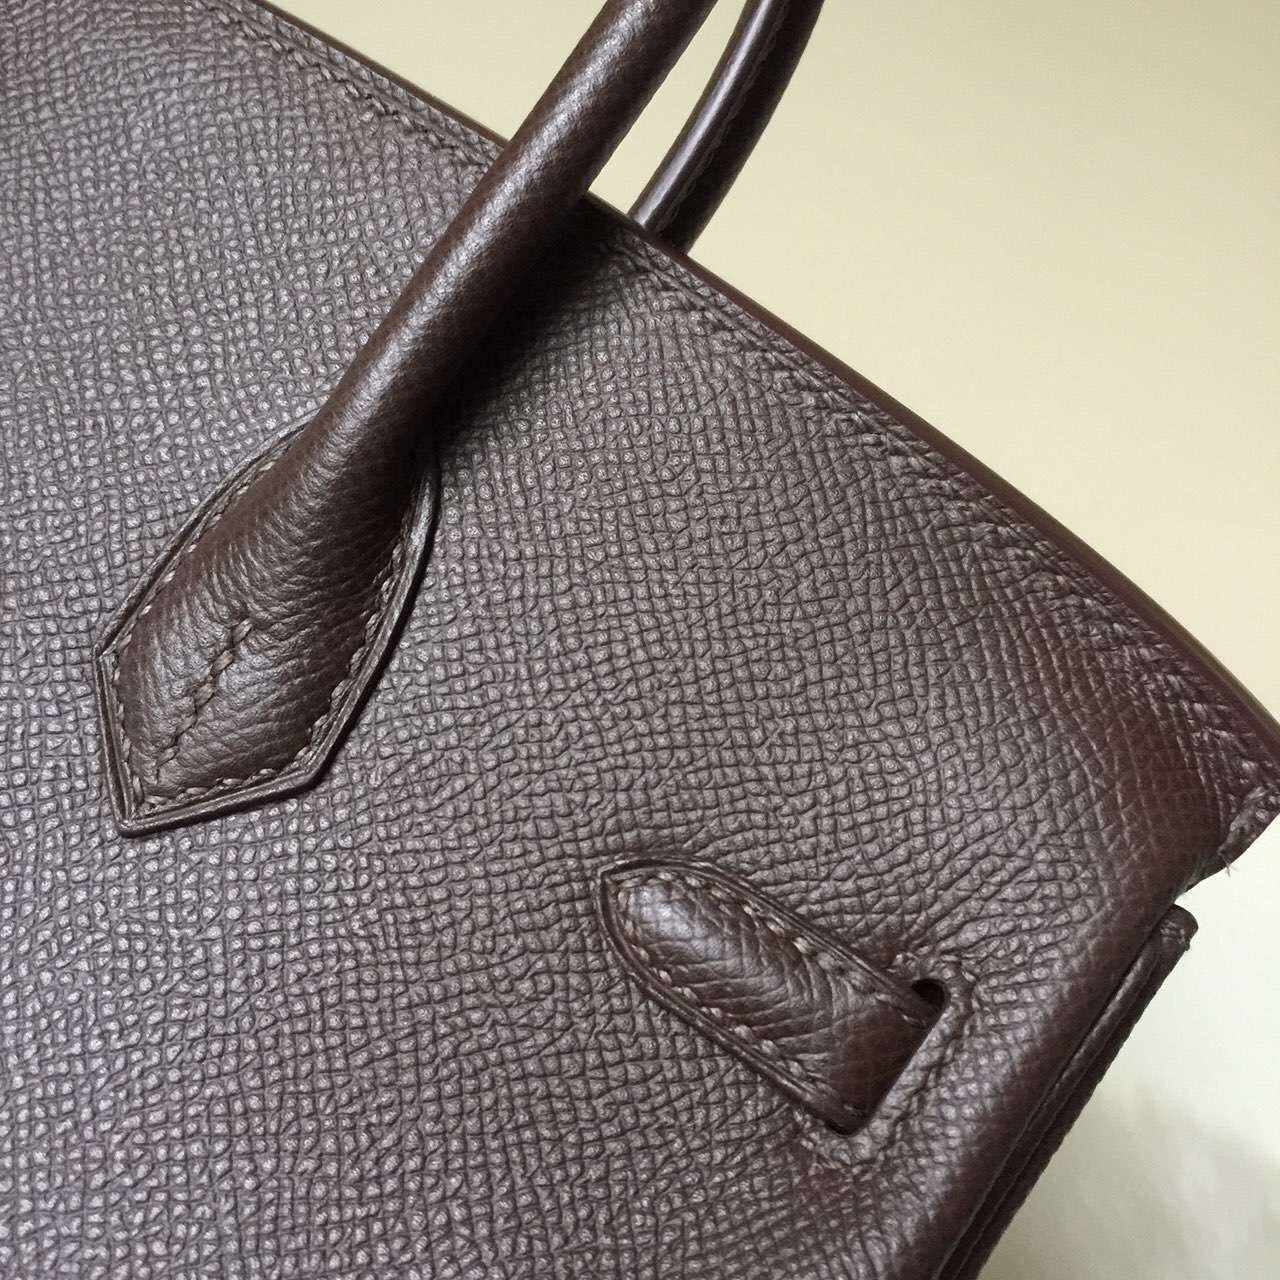 Hand Stitching Hermes Birkin25cm in Coffee Color Epsom Leather